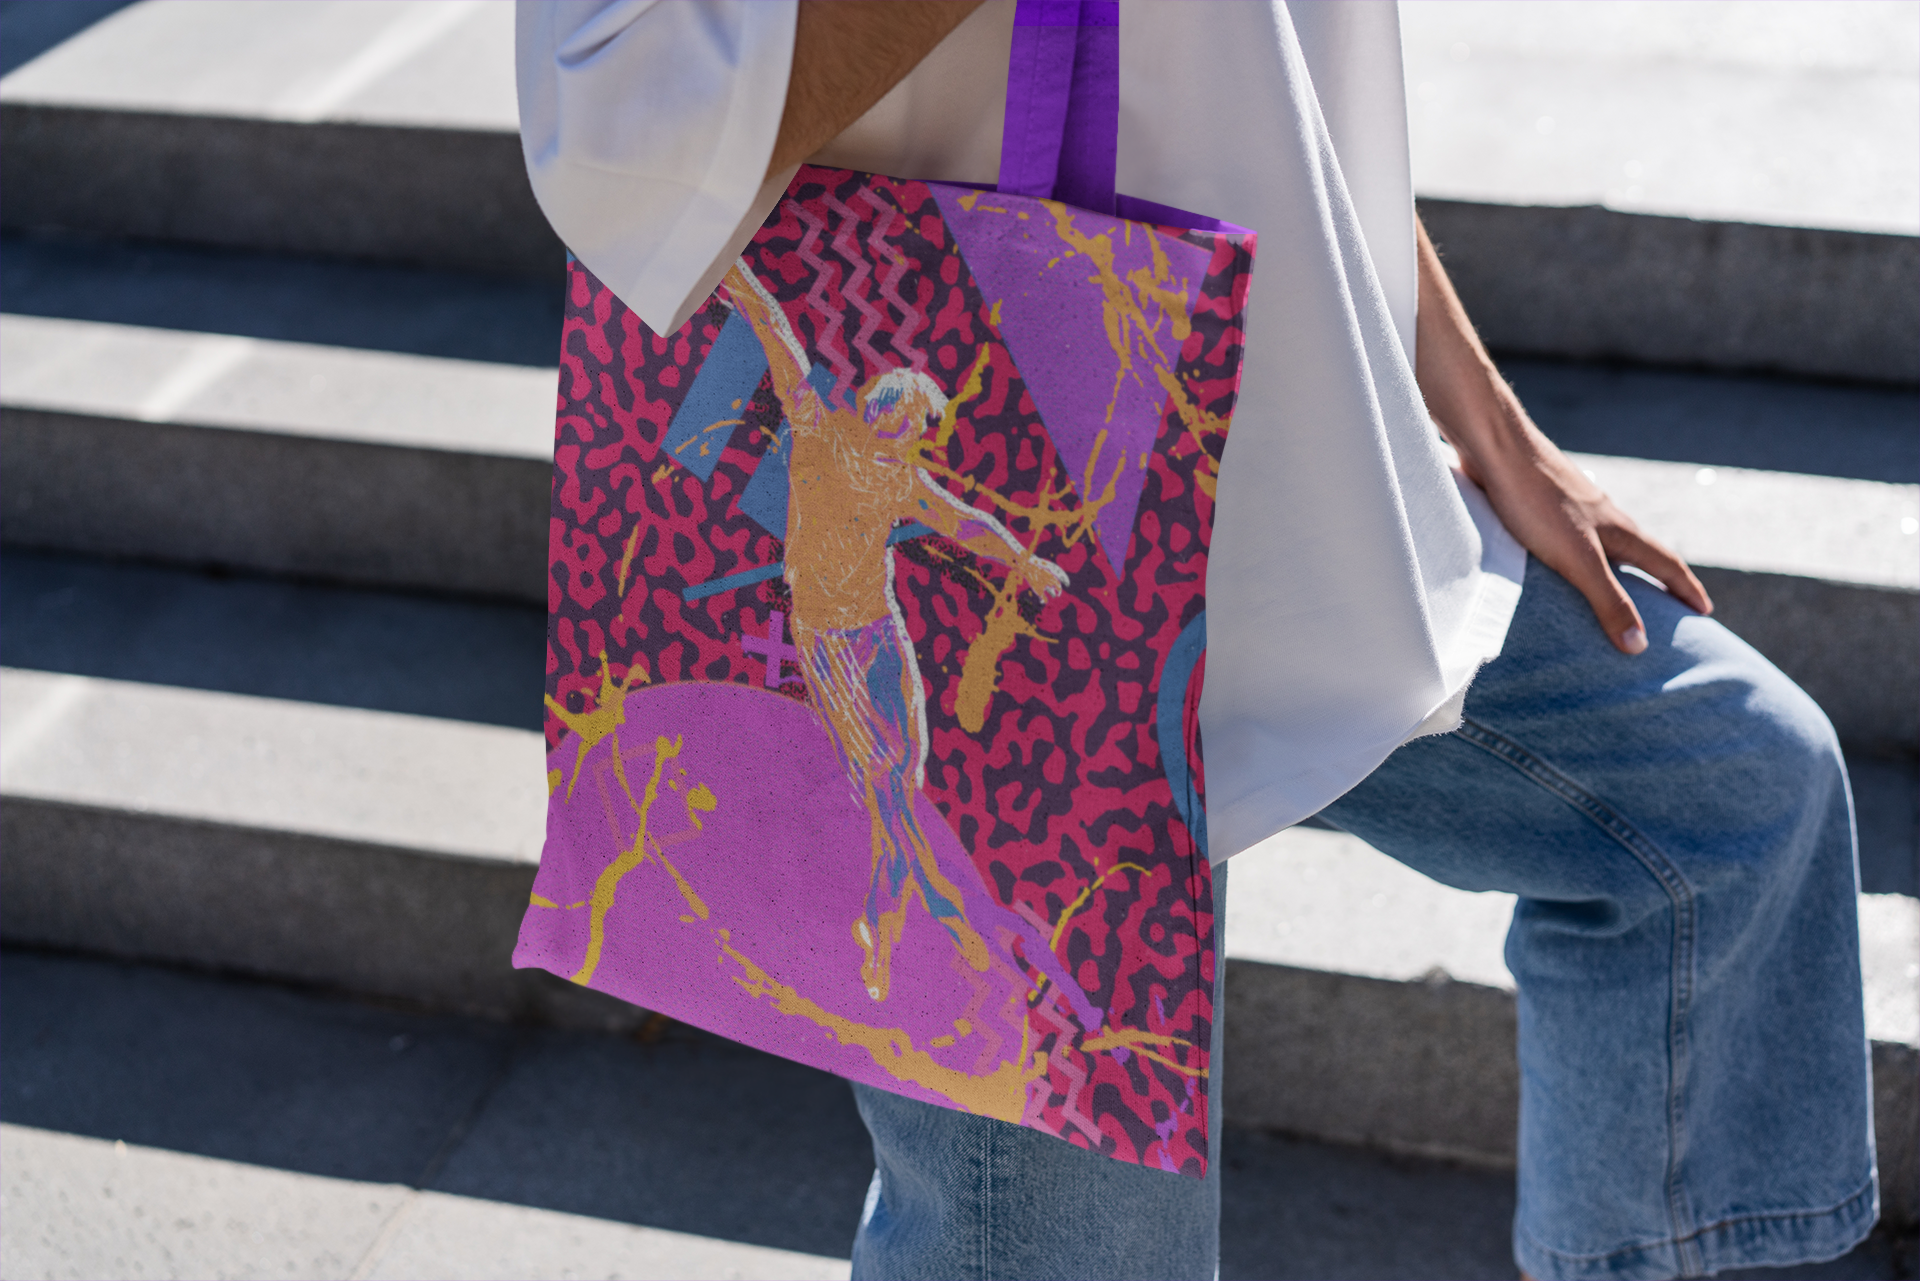 tote-bag-mockup-of-a-woman-posing-on-some-steps-3135-el1